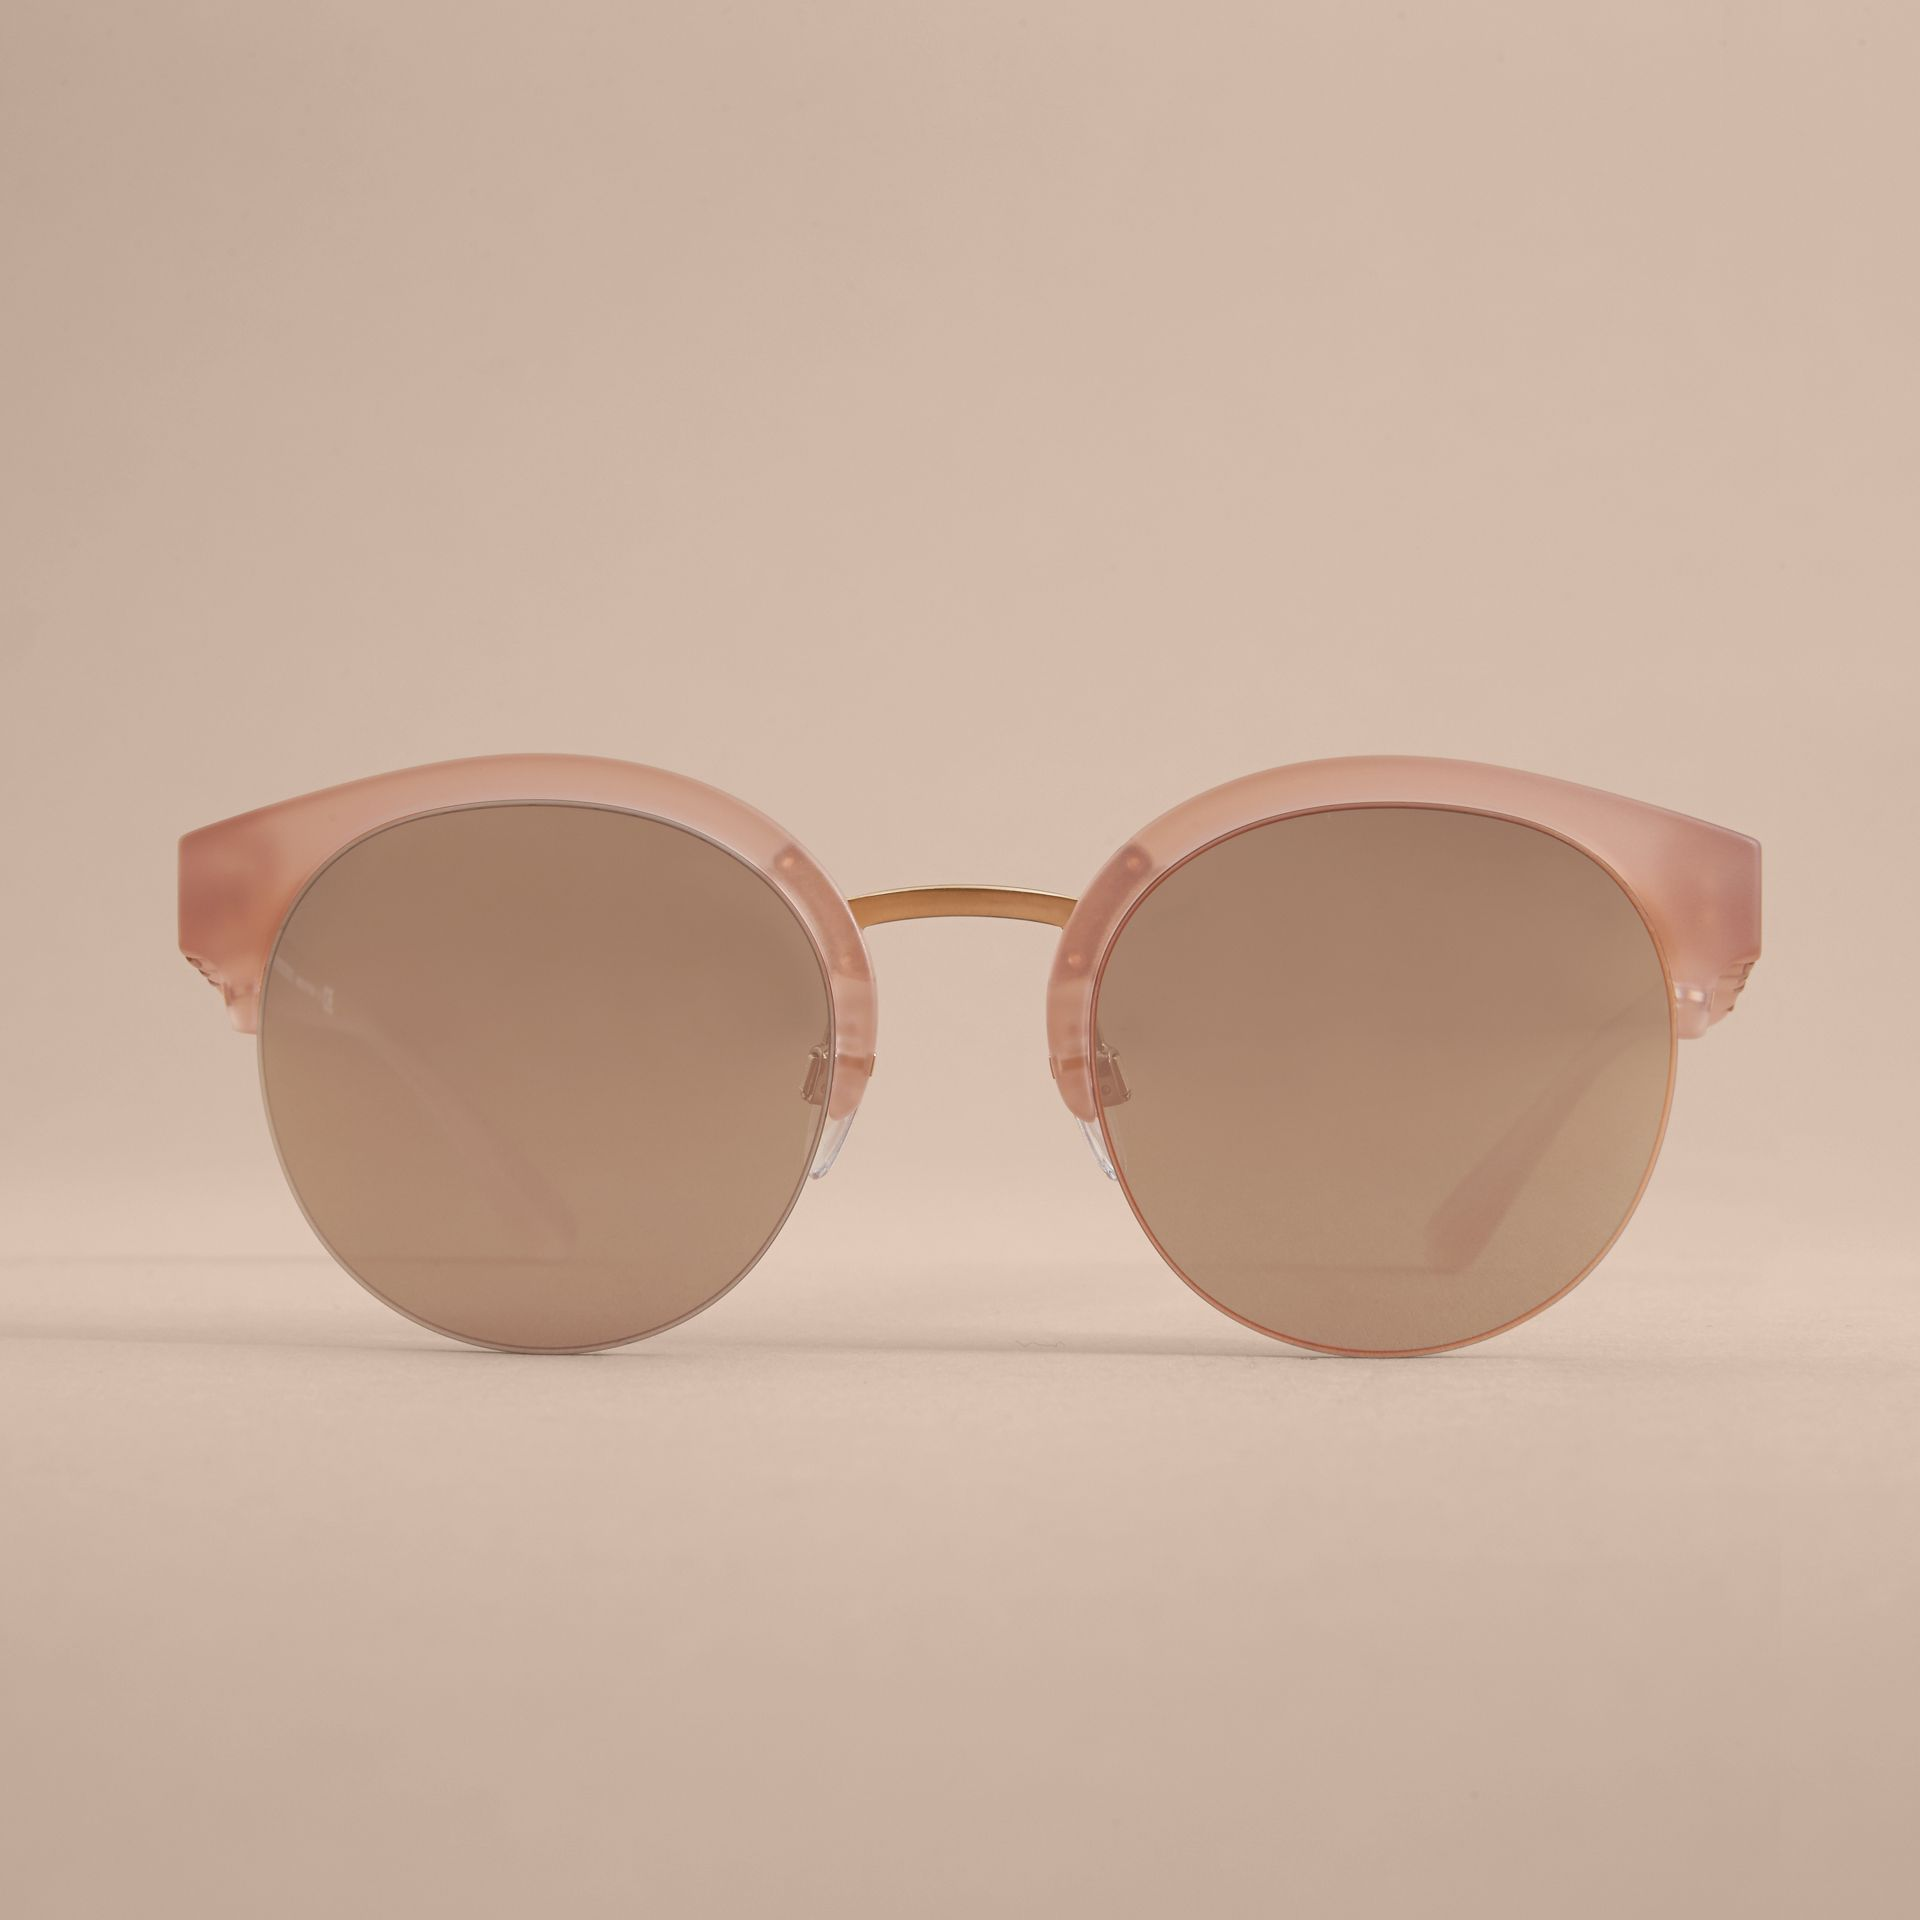 Check Detail Round Half-frame Sunglasses in Nude - Women | Burberry - gallery image 3